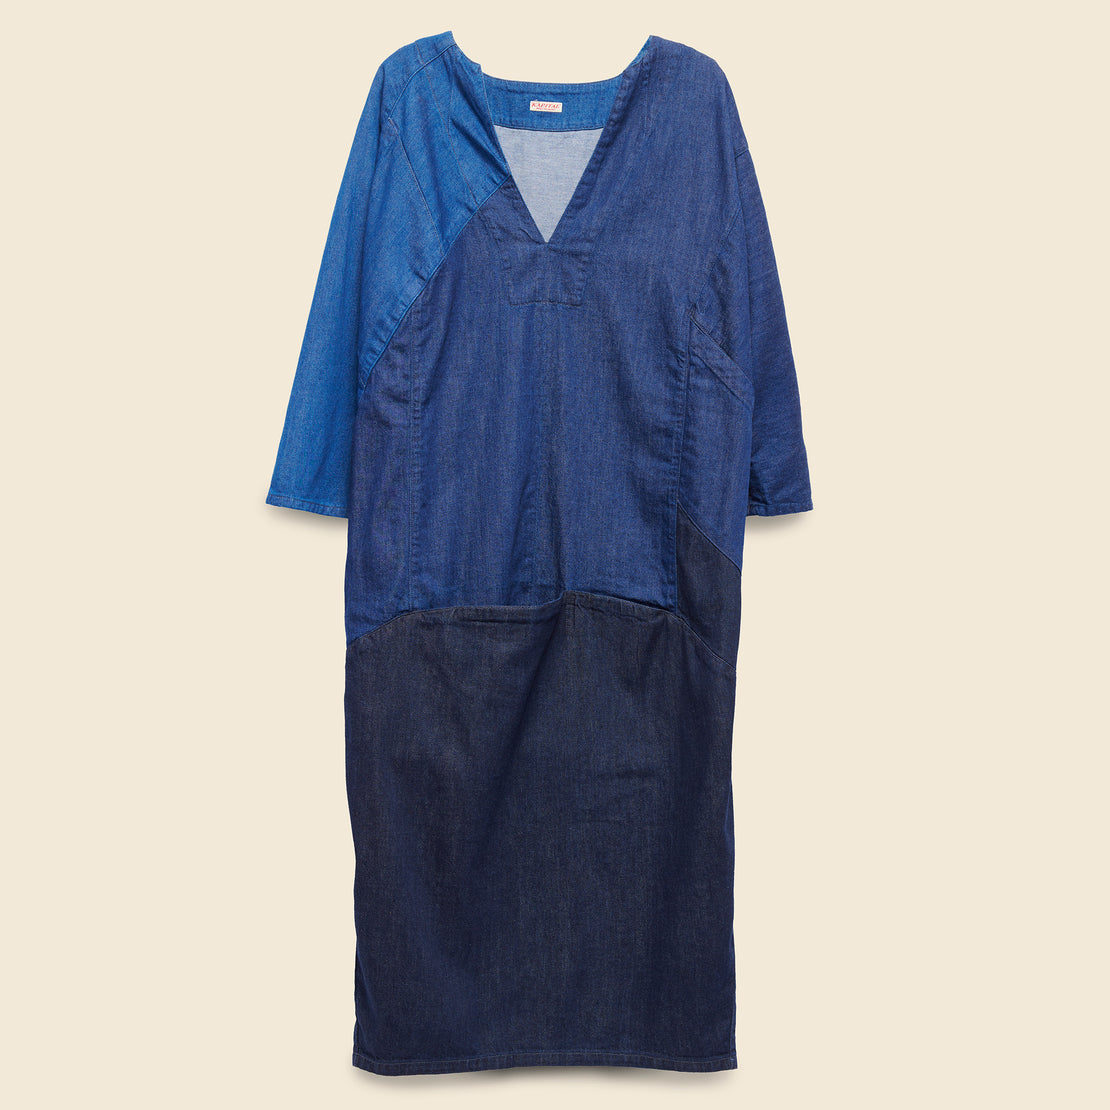 Kapital 3Tones Denim Gimmick Art Dress - Indigo